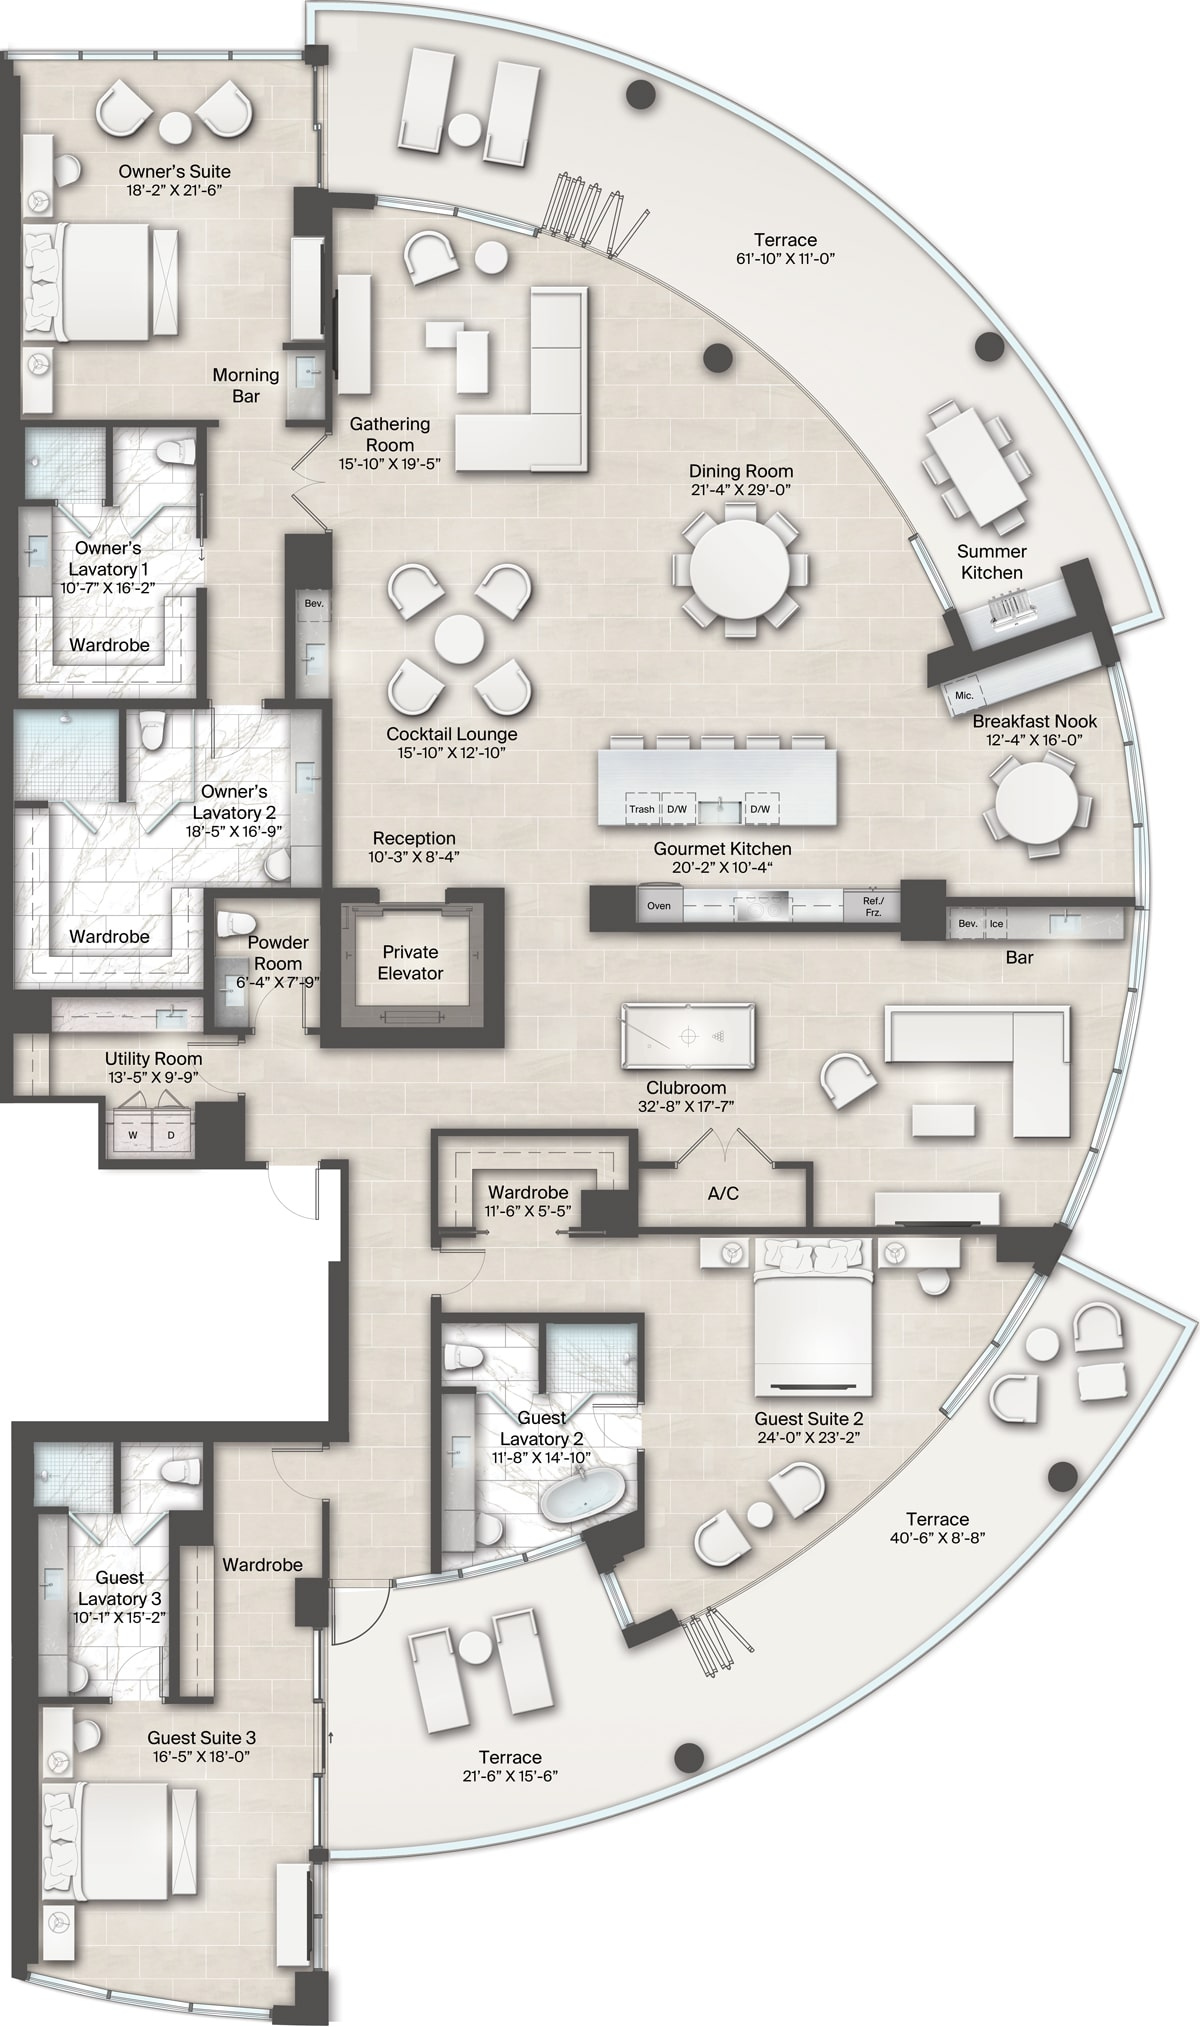 Armand Building, Plan 4 Floorplan includes 3 bedrooms, 4.5 baths, clubroom and one large wrap around terrace